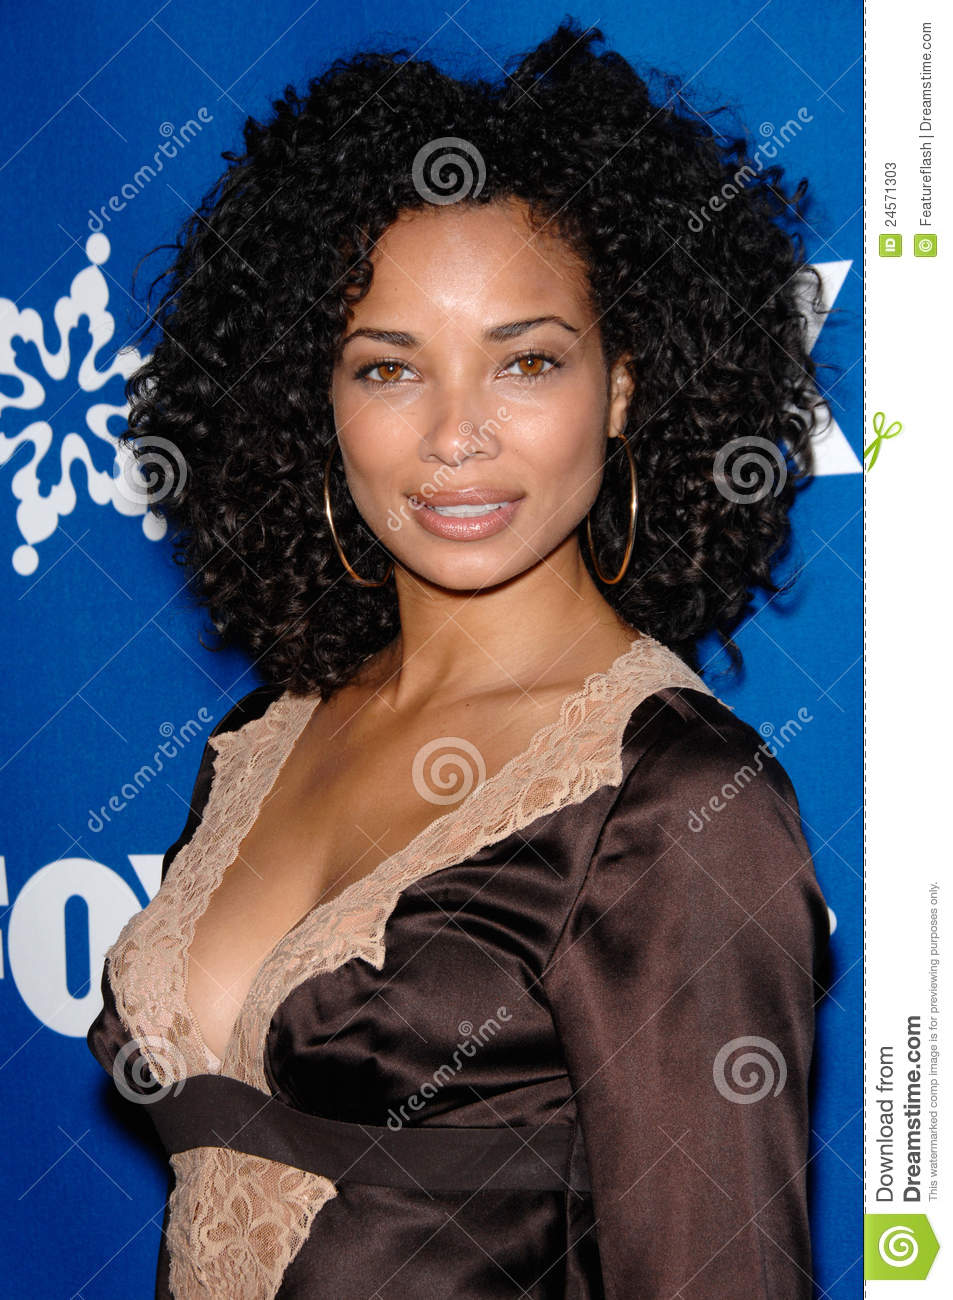 rochelle aytes facebookrochelle aytes husband, rochelle aytes eyes, rochelle aytes married, rochelle aytes instagram, rochelle aytes age, rochelle aytes bio, rochelle aytes engaged, rochelle aytes movies, rochelle aytes criminal minds, rochelle aytes and cj lindsey, rochelle aytes curly hair, rochelle aytes family, rochelle aytes imdb, rochelle aytes mom, rochelle aytes spouse, rochelle aytes twitter, rochelle aytes facebook, rochelle aytes makeup, rochelle aytes interview